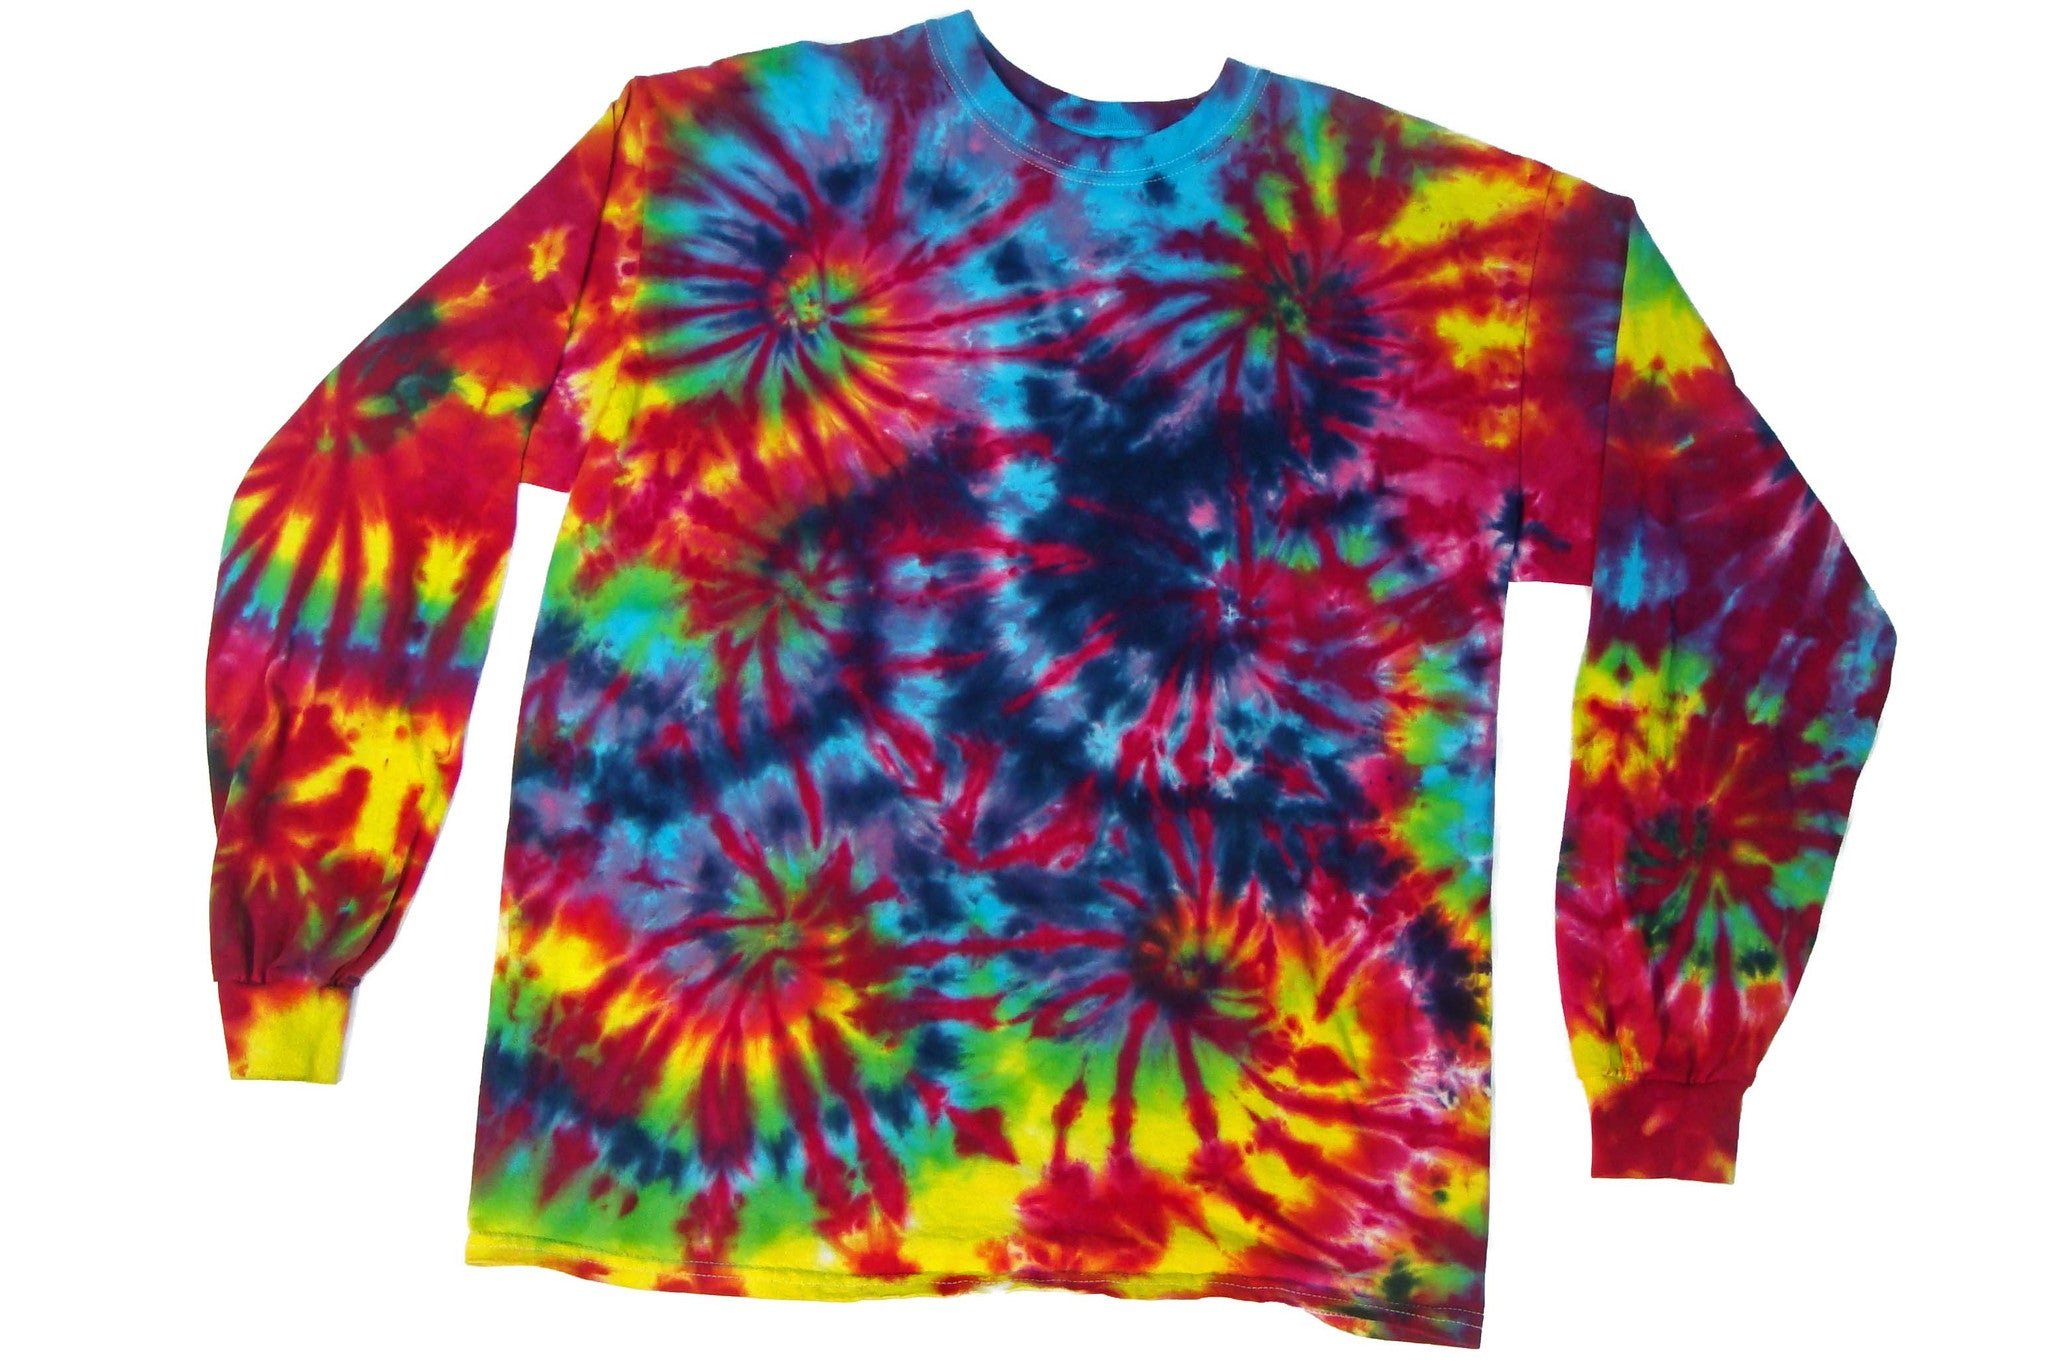 Long Sleeve Tie Dye Burning Man T Shirt